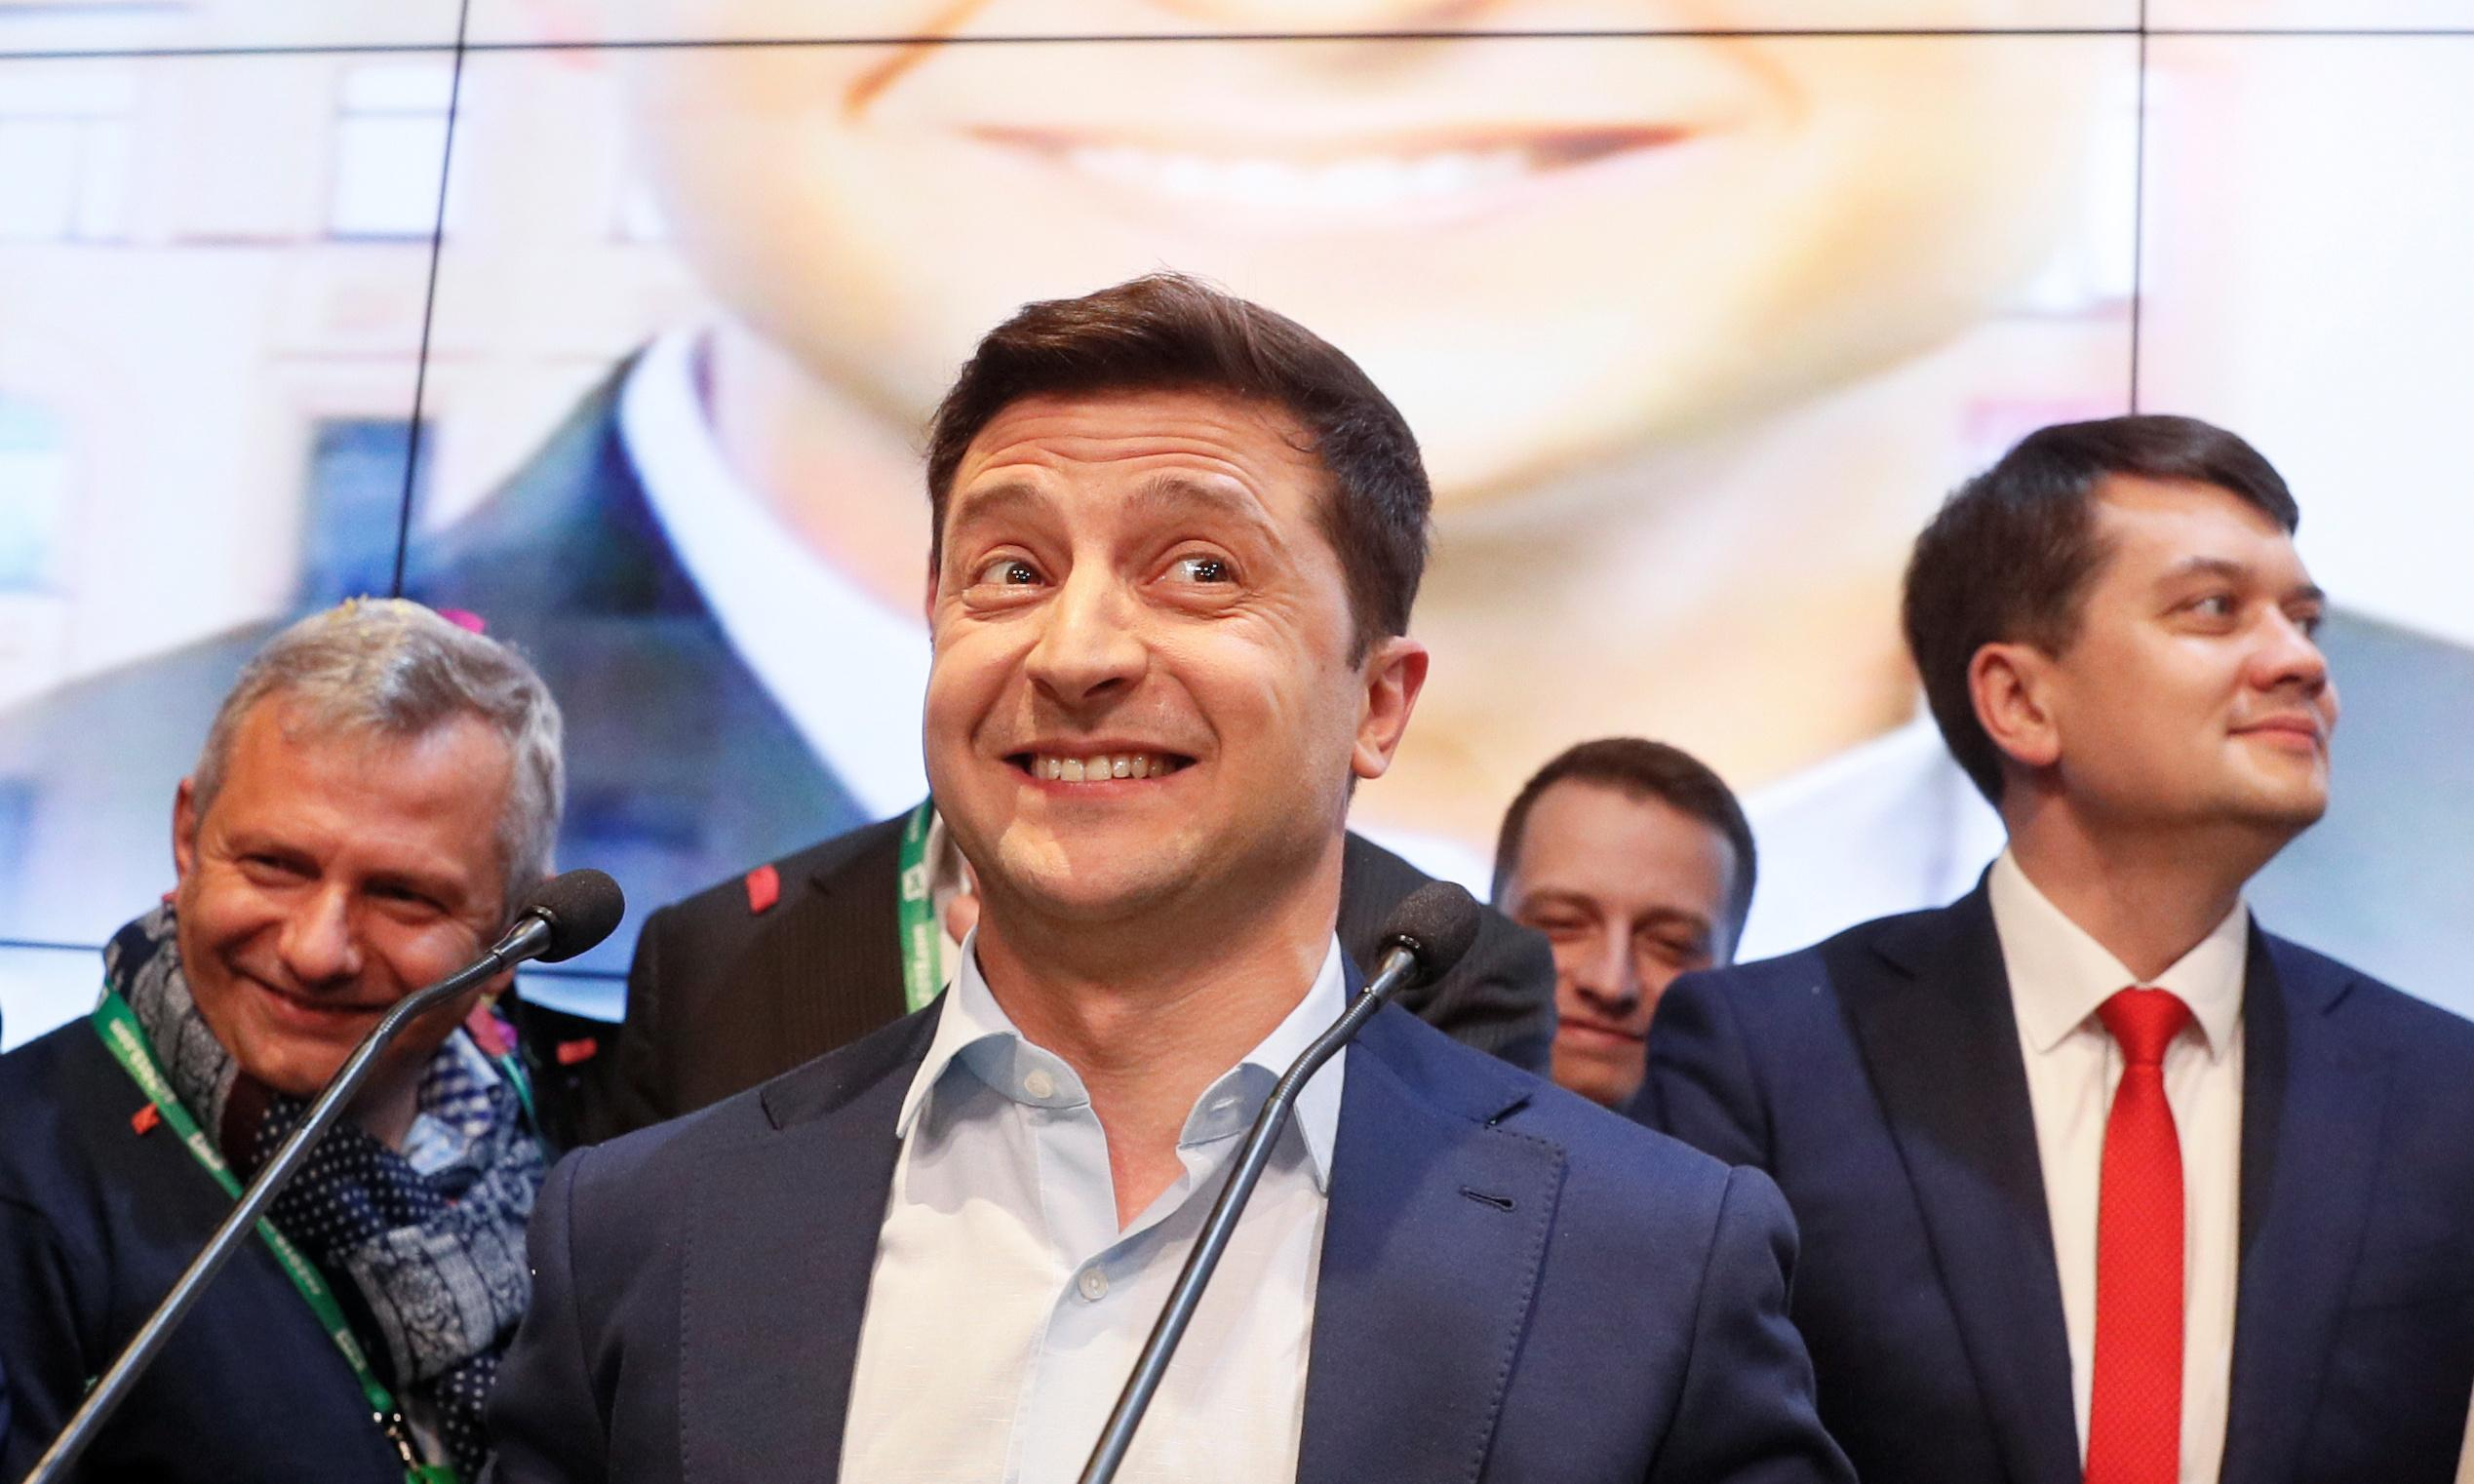 Zelenskiy's victory in Ukraine was extraordinary. But now he faces a real test